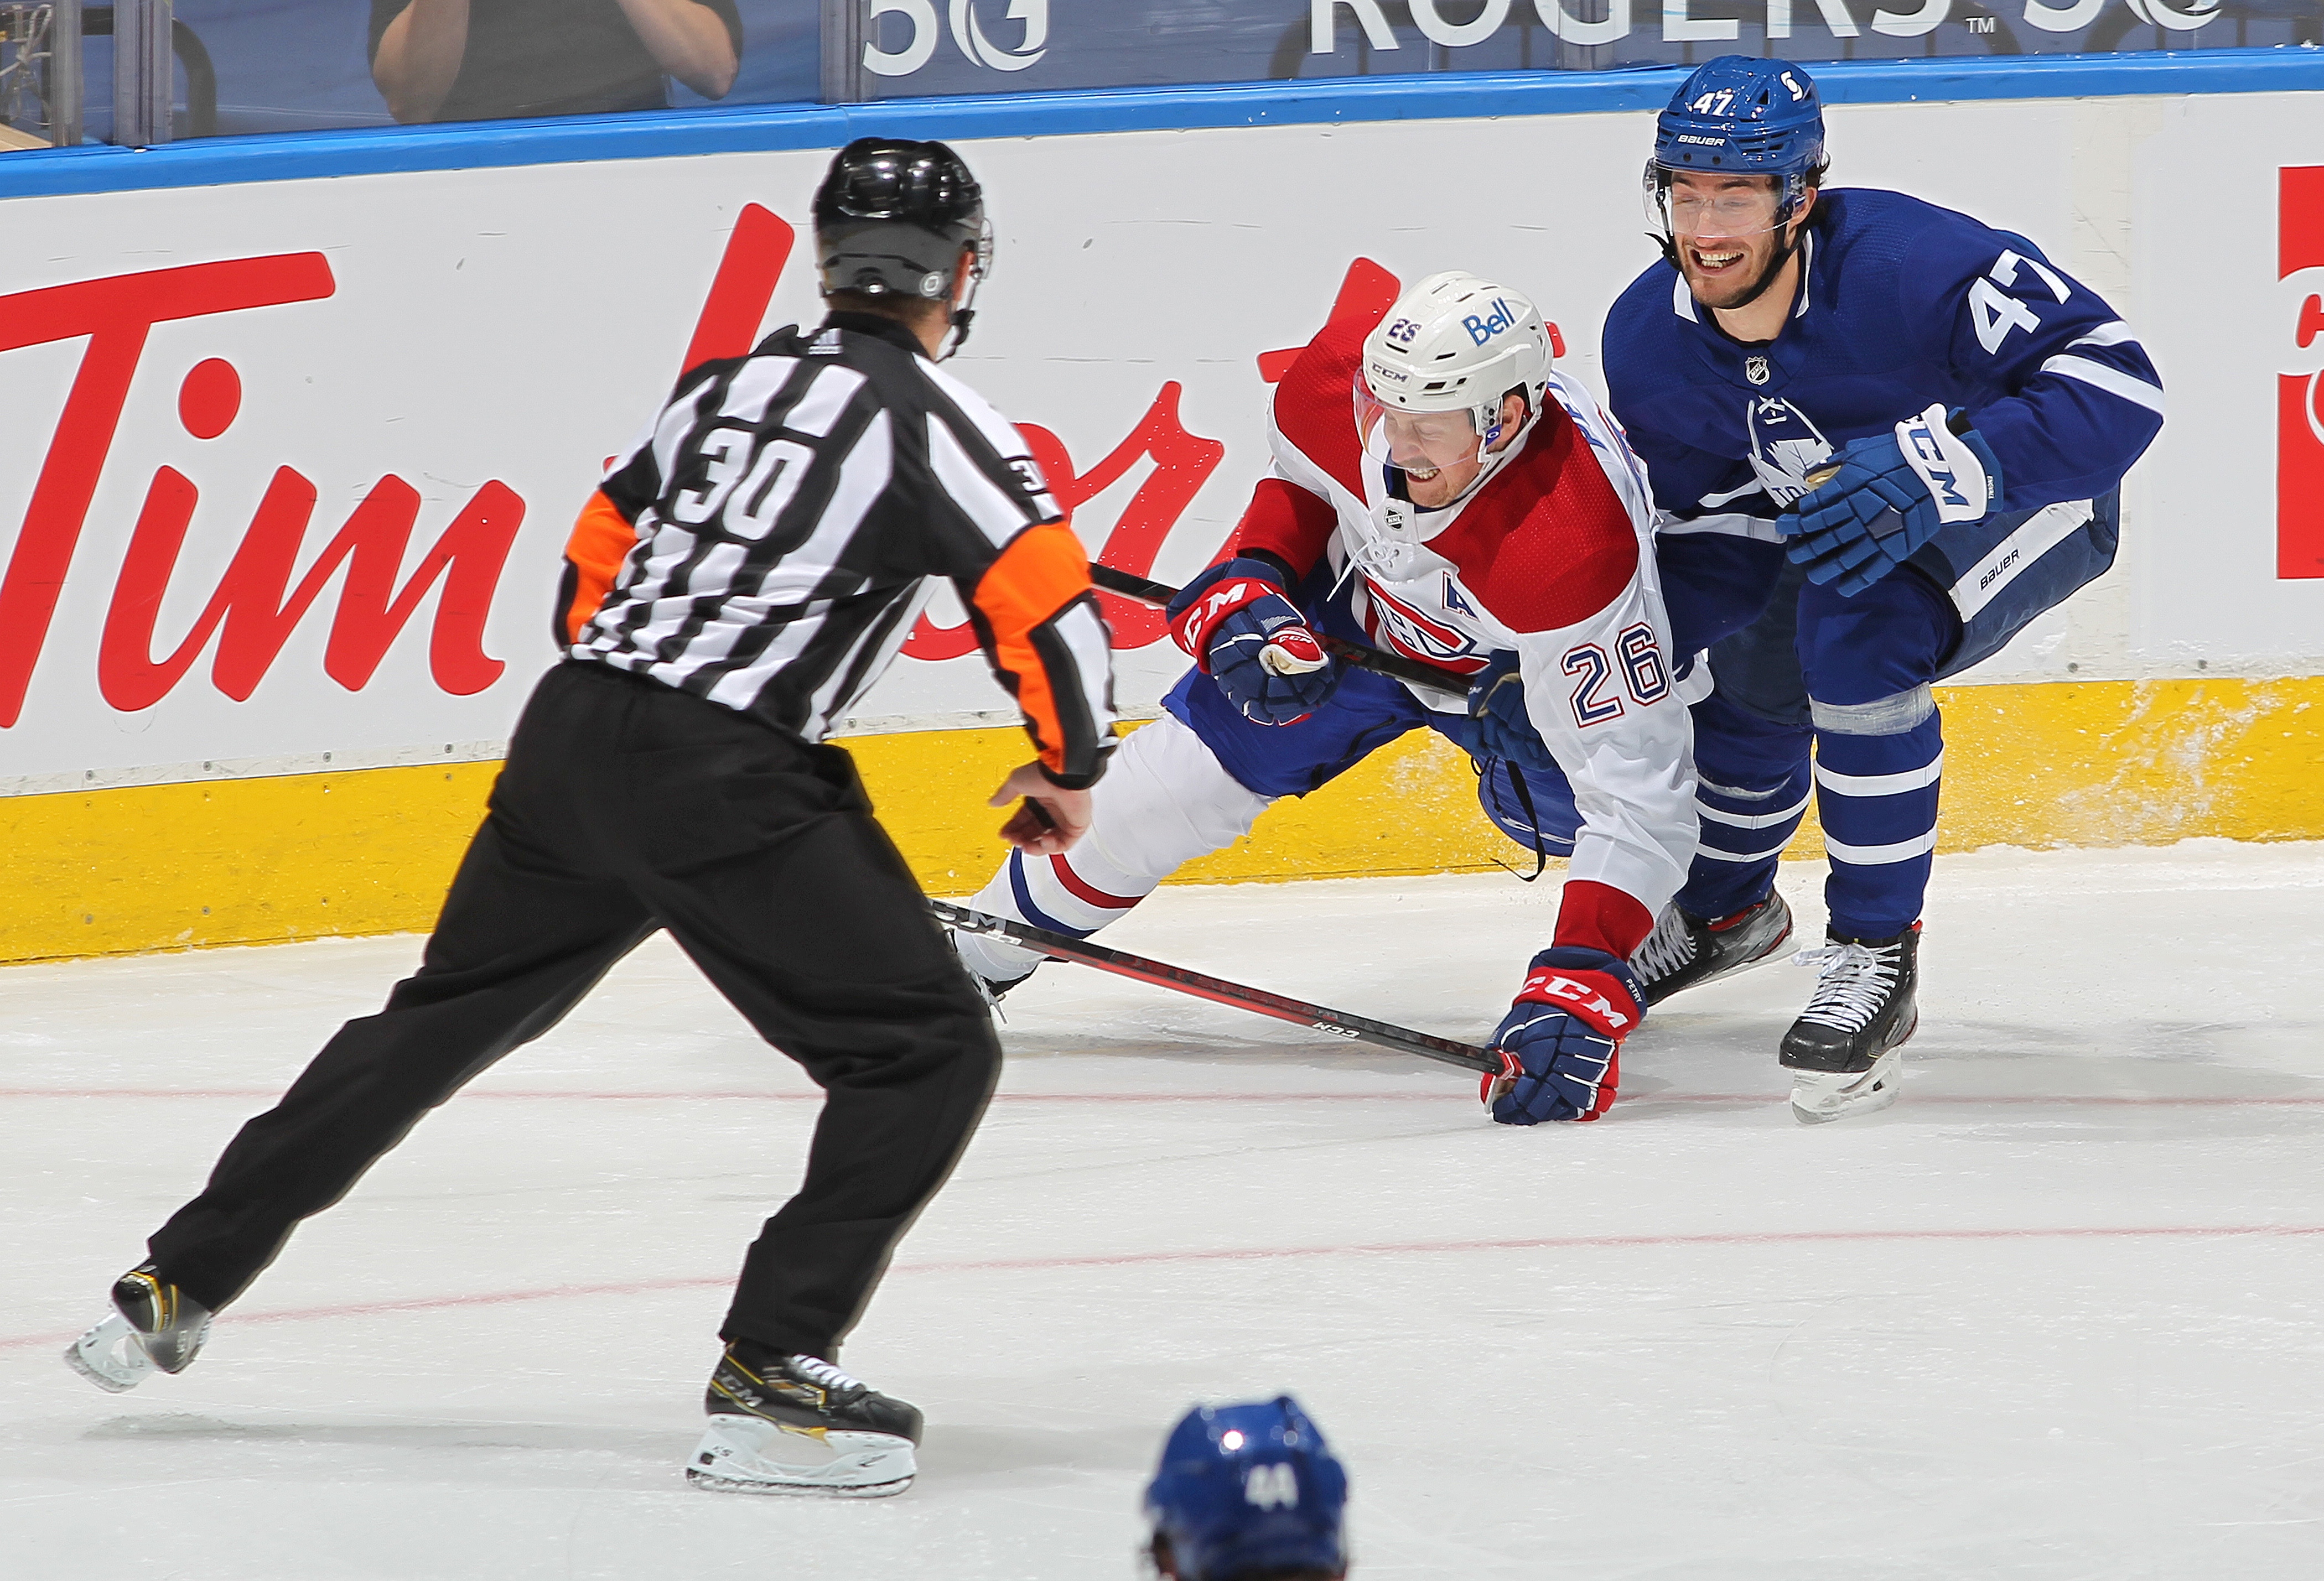 Montreal Canadiens v Toronto Maple Leafs